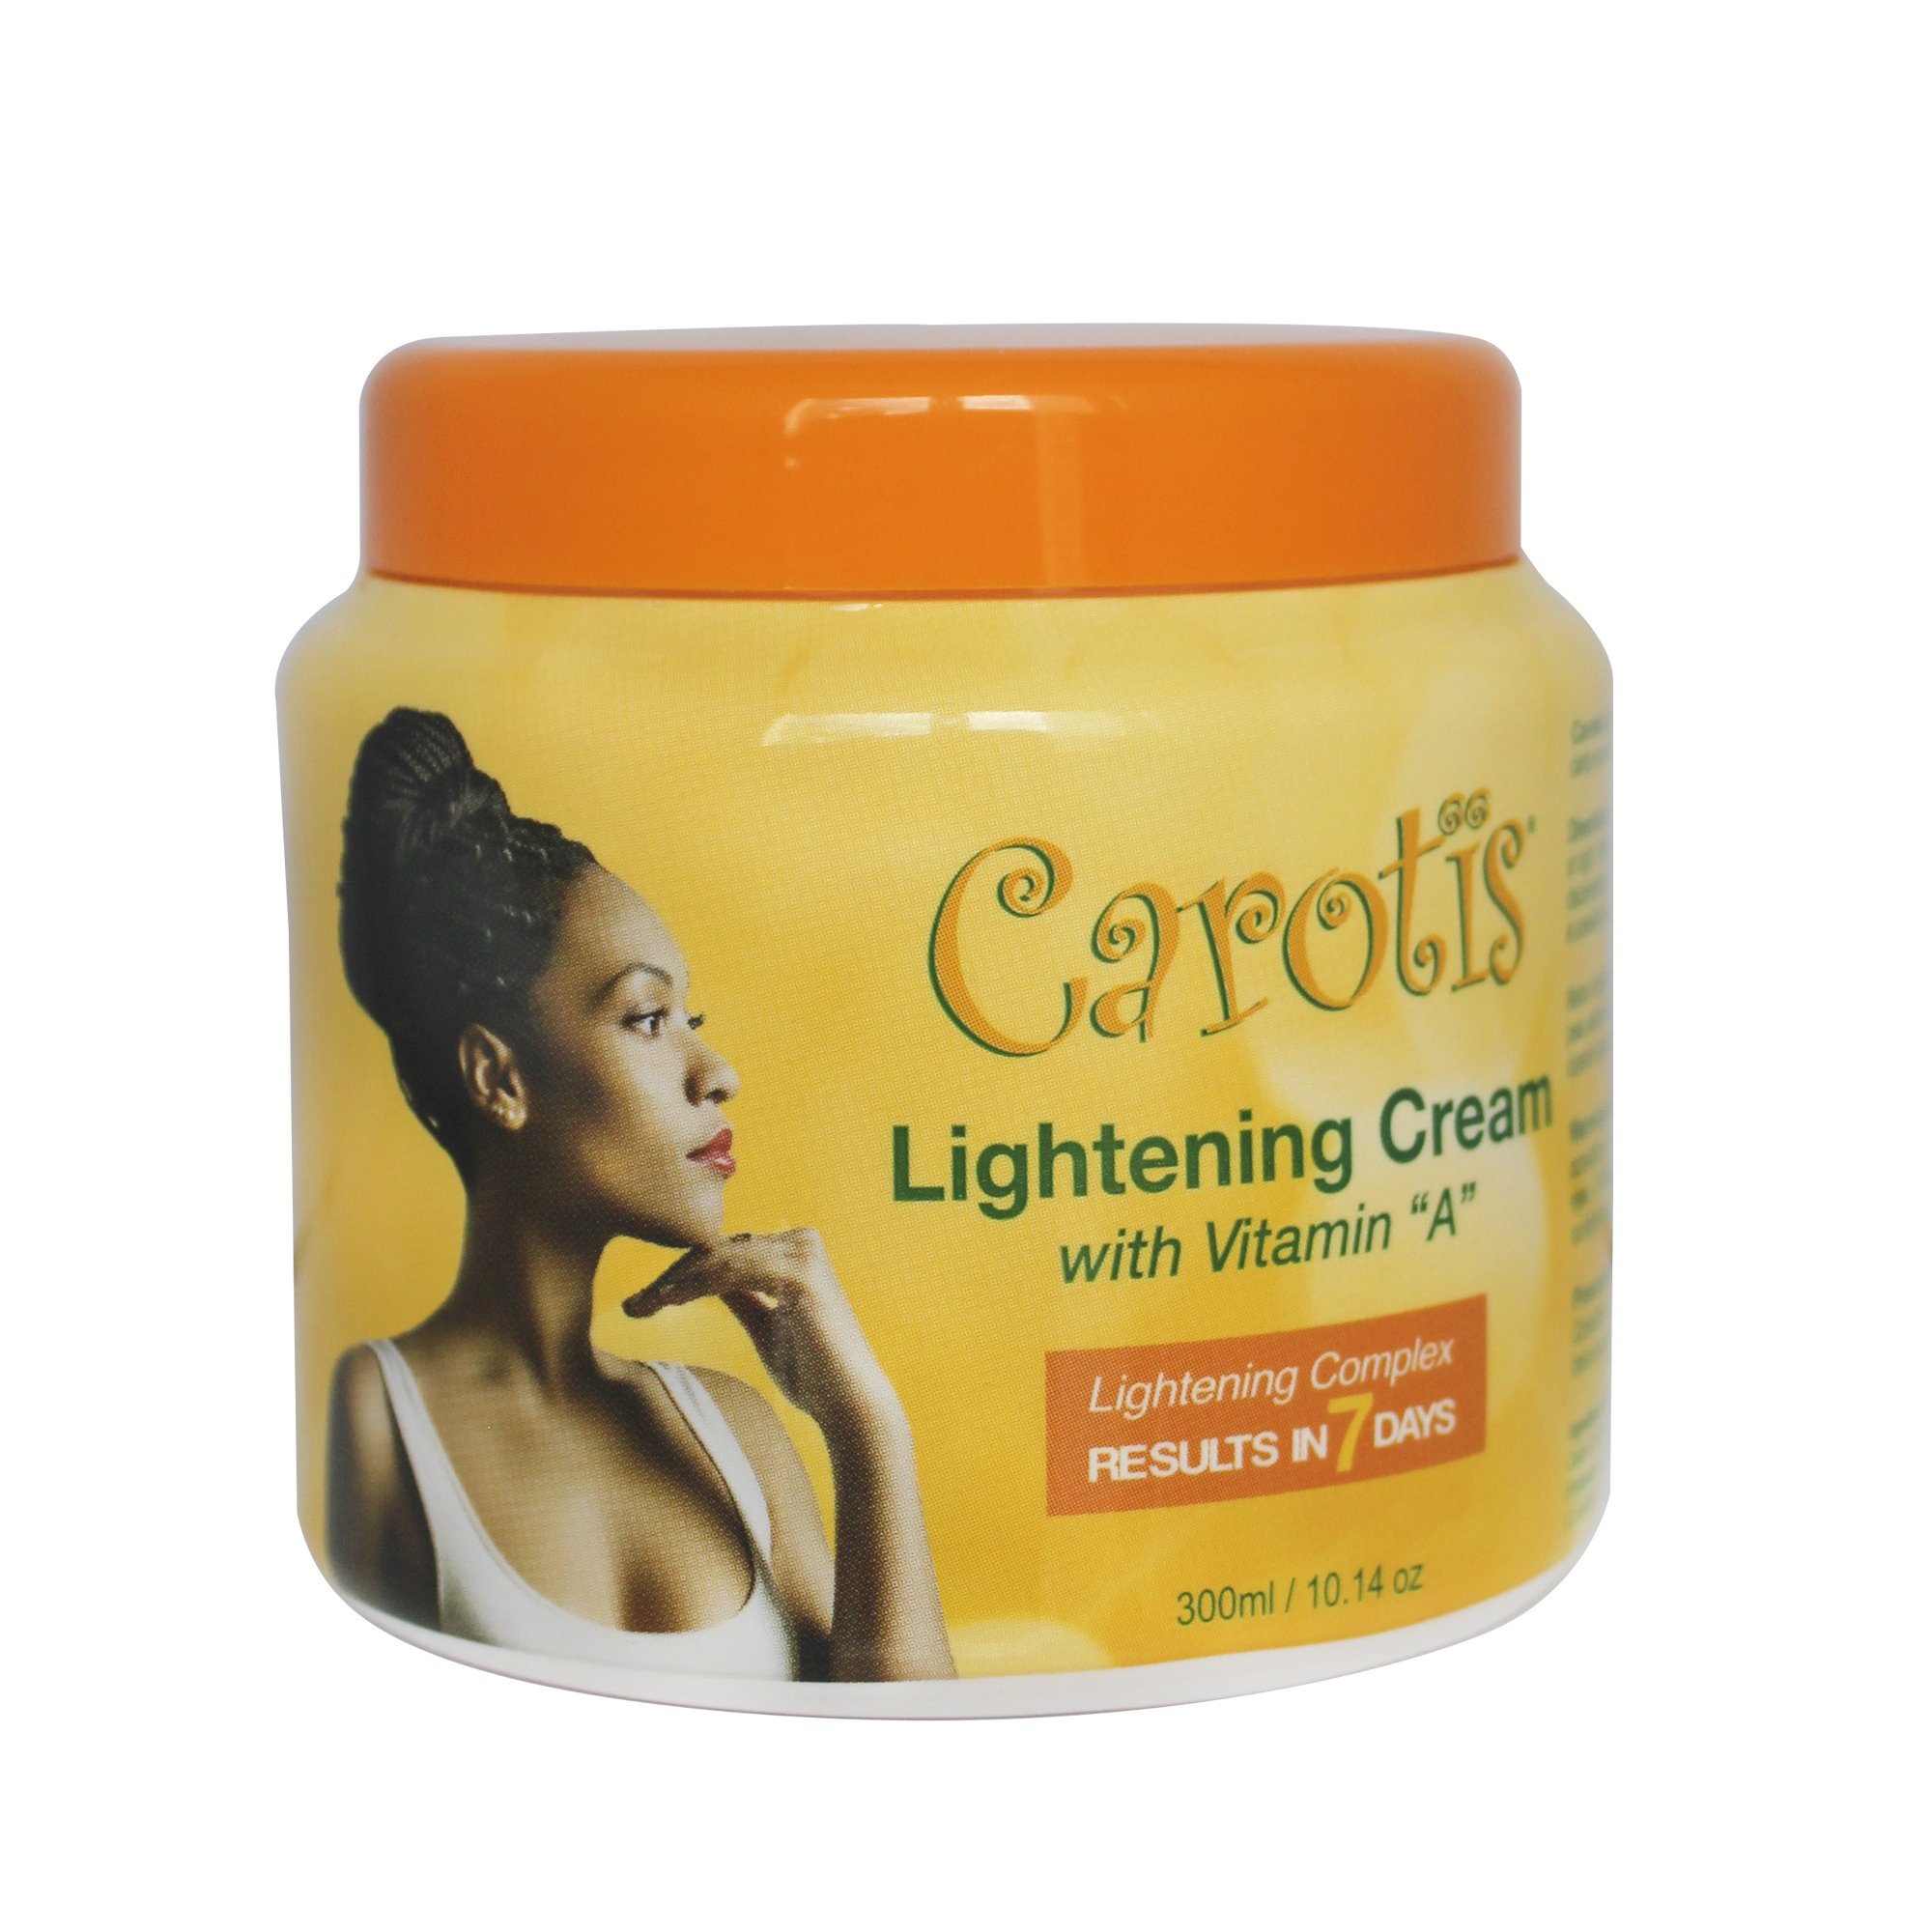 Carotis Lightening Cream  w Vitamin A (R 7 days)  (Jar)